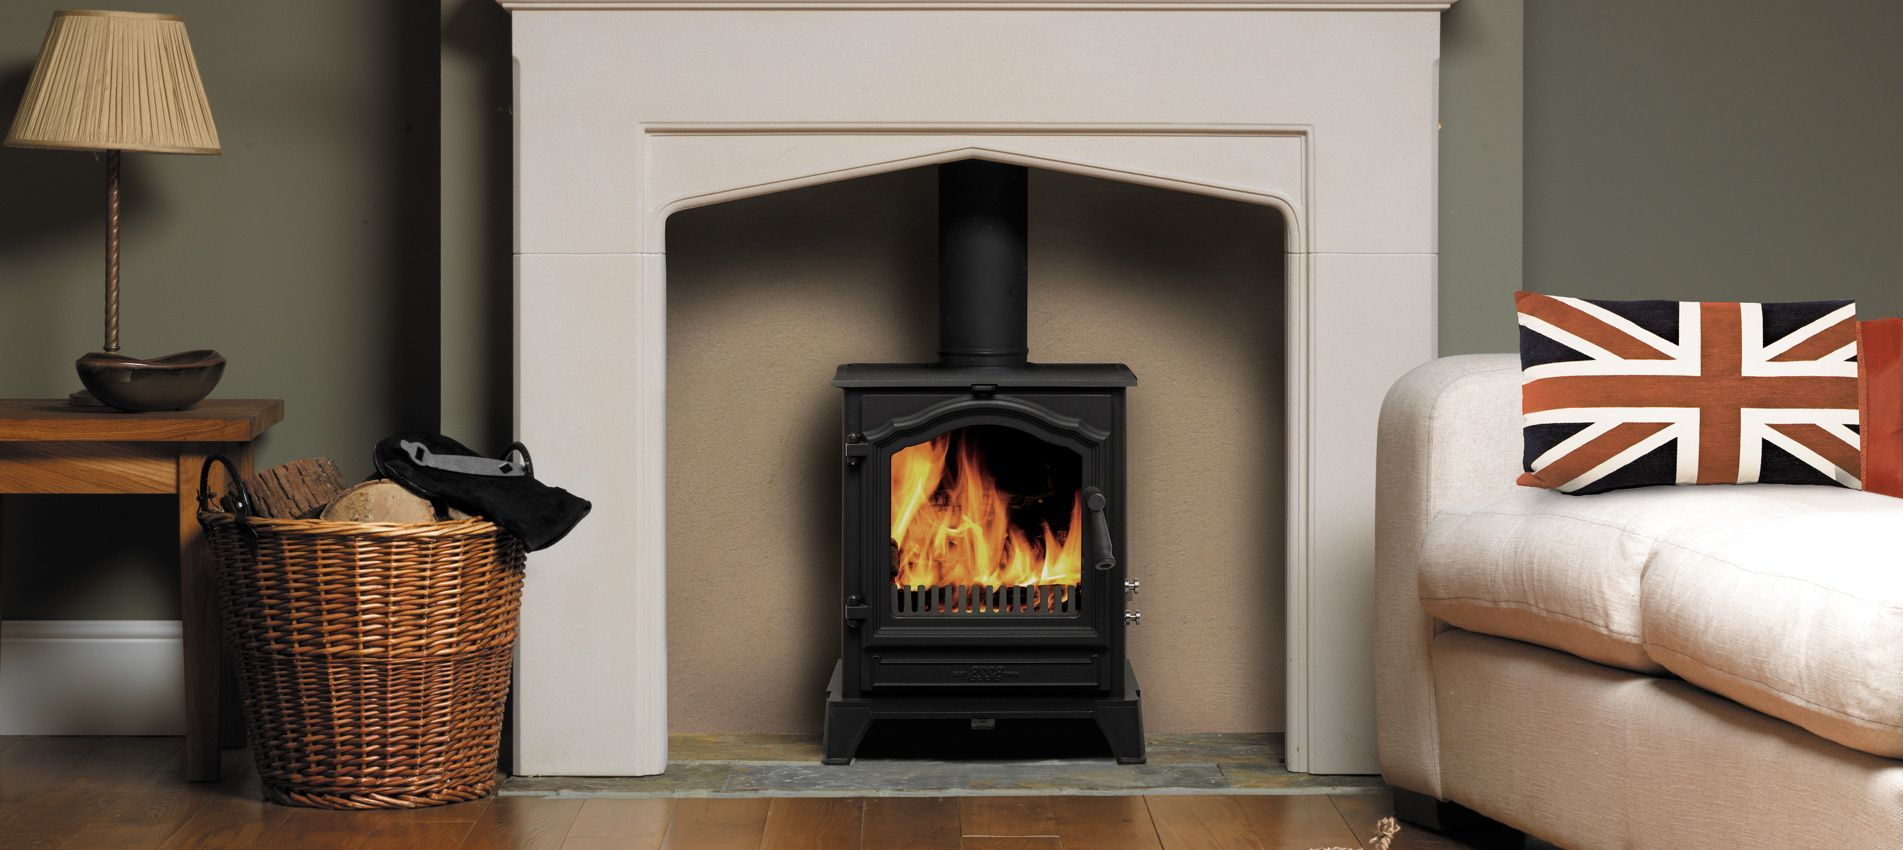 How To Fix A Cast Iron Fireplace To Wall 09 5 Een